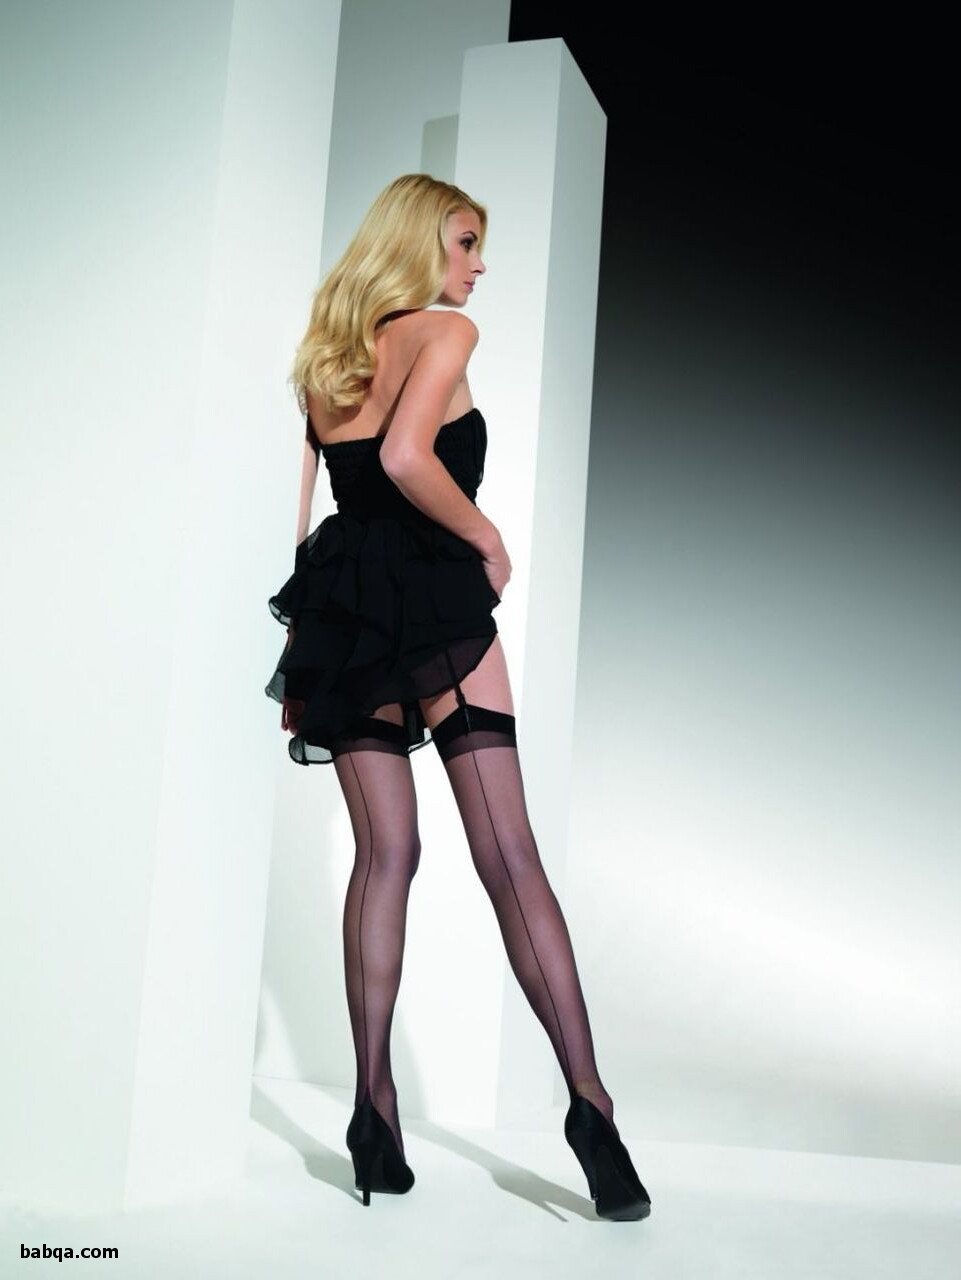 stockings with attached garter belt and black thong lingerie